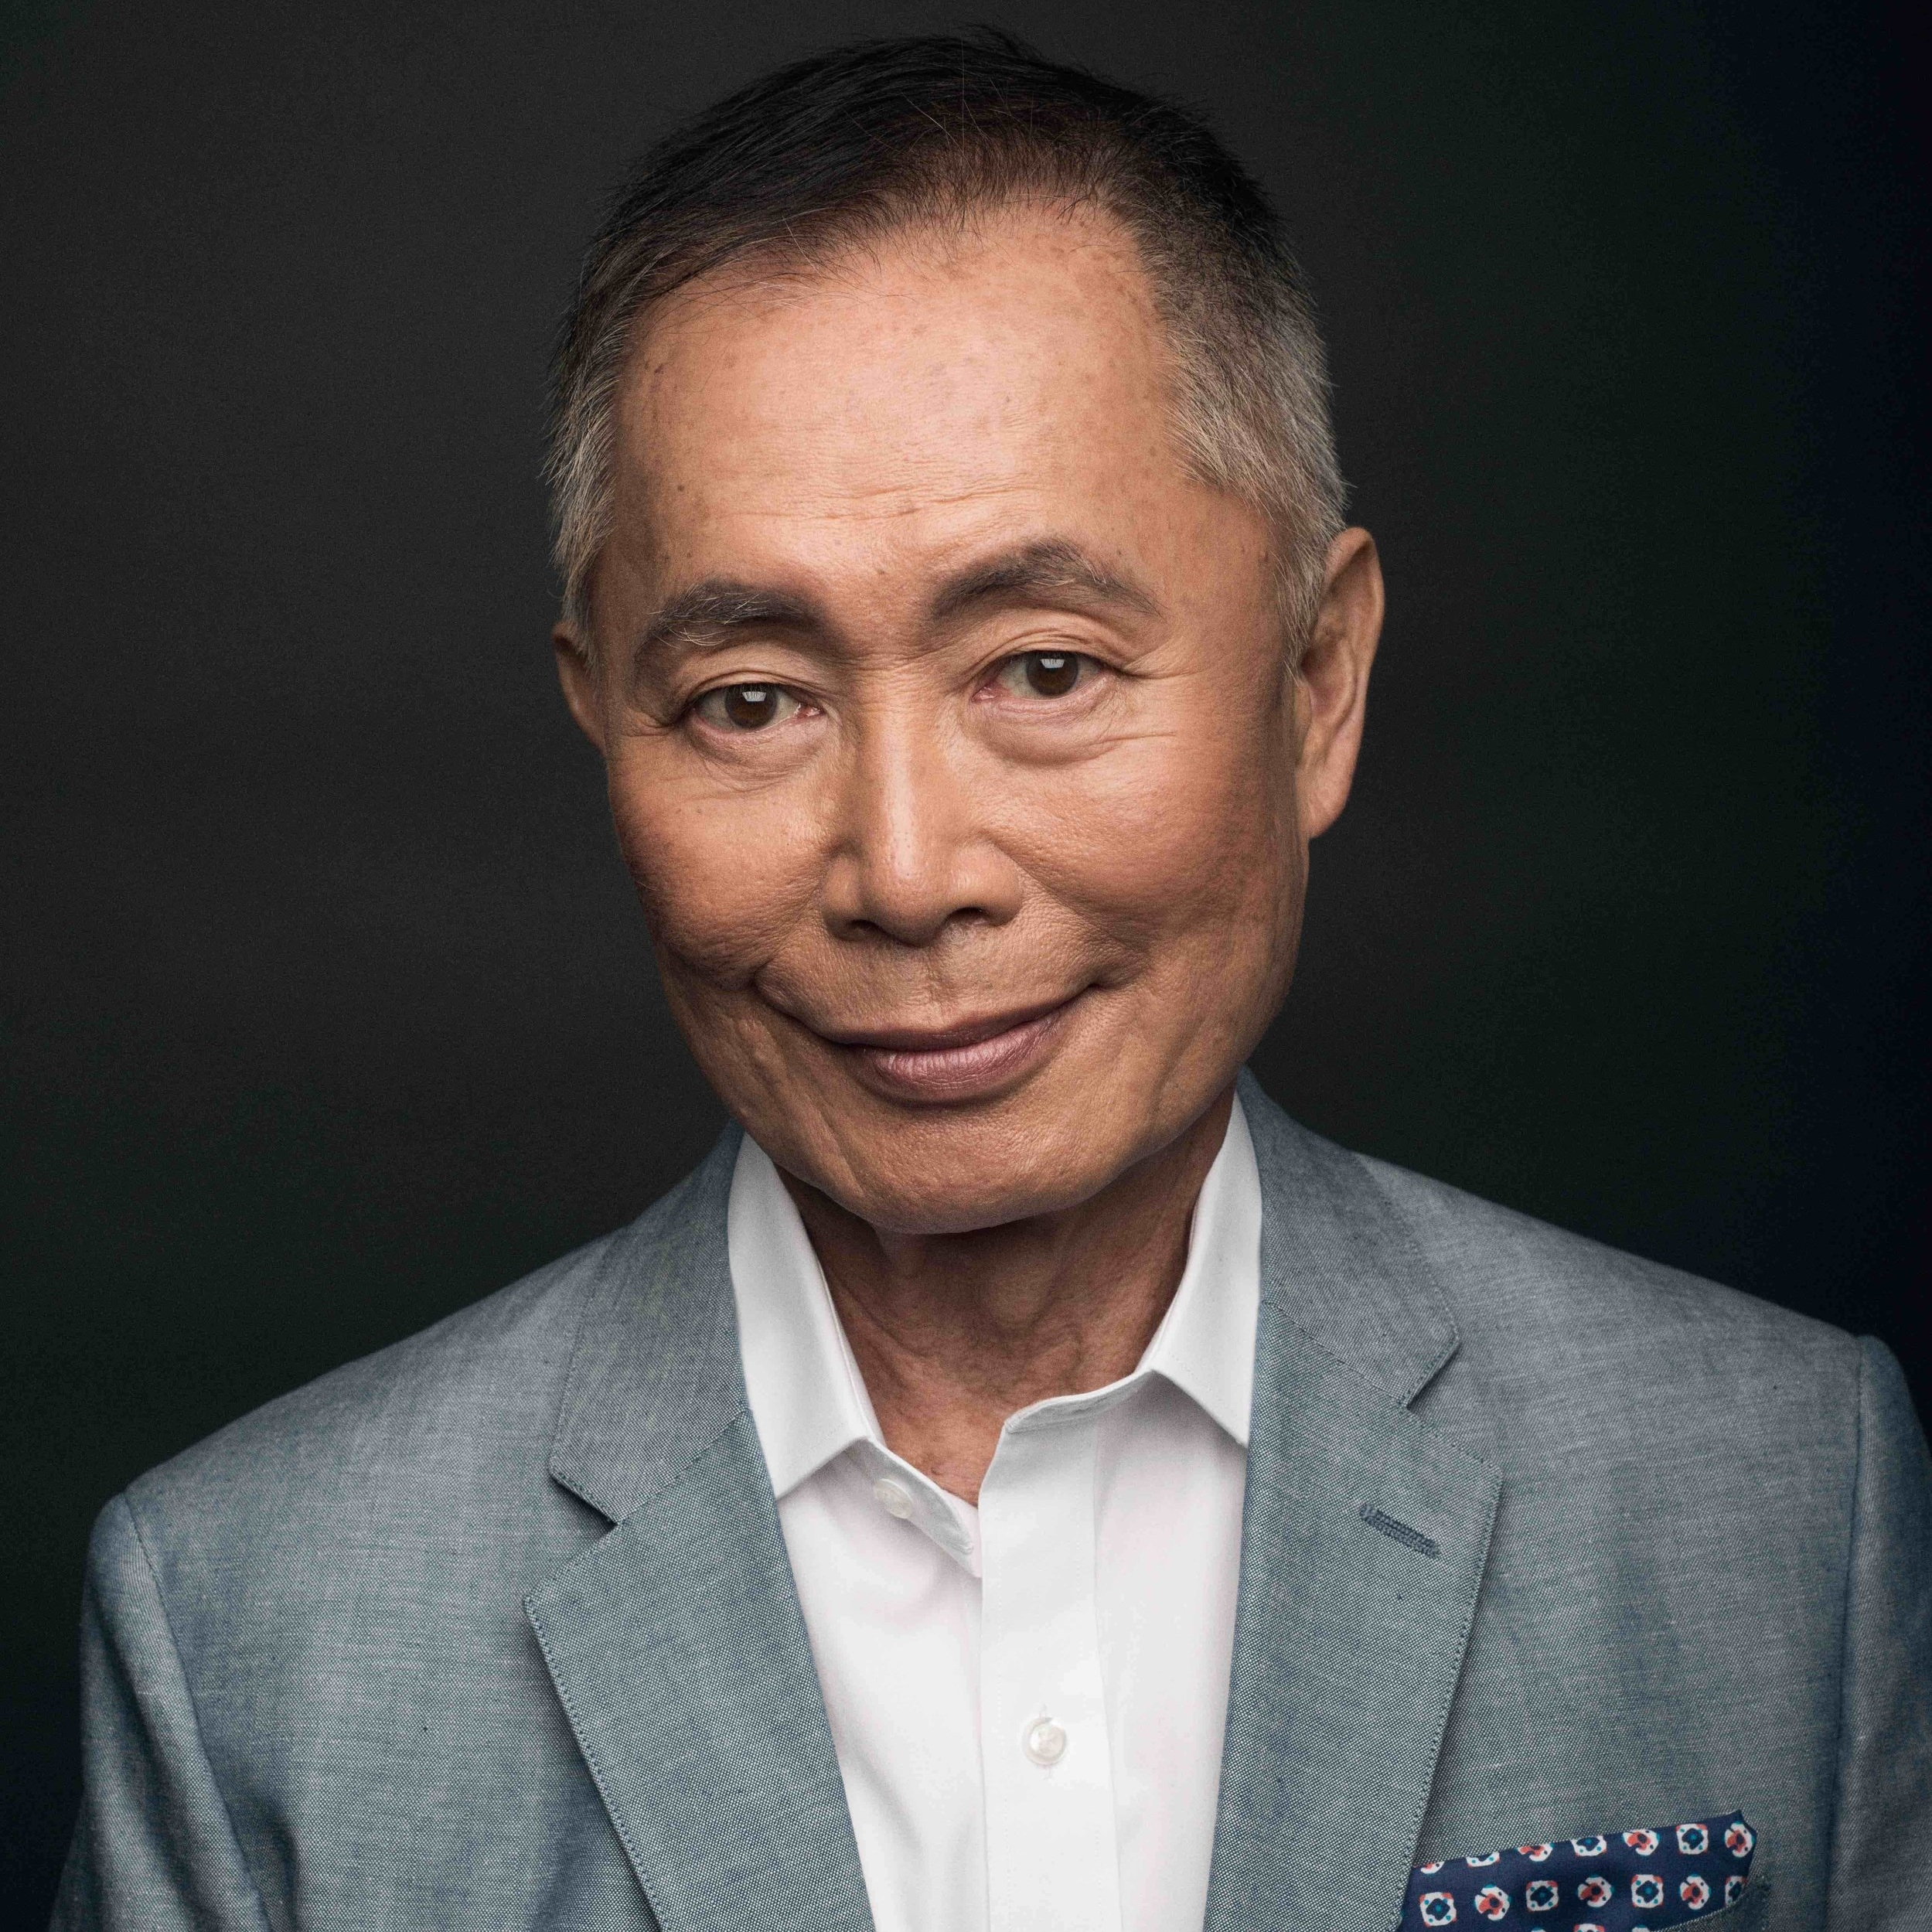 George Takei Actor and Activist   Working with Emily McGill is a pleasure – professional, prompt, prepared and knowledgeable, I can always rely on her for good guidance.